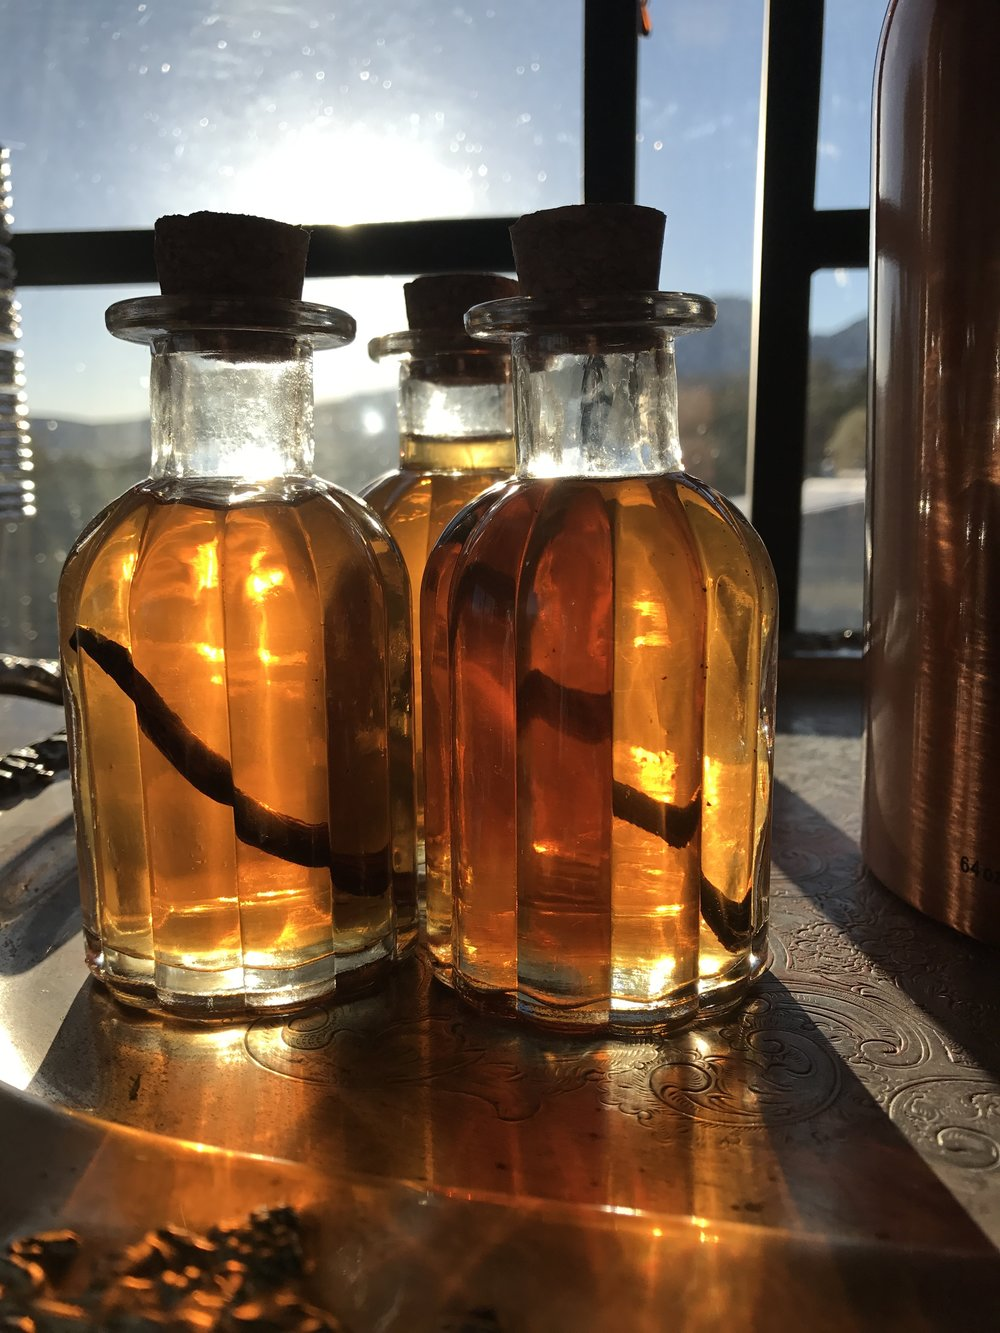 Yum! Homemade Vanilla Extract---ready to be given away or tucked away for later. Leaving a piece of vanilla bean in the bottle makes it look pretty cool too!